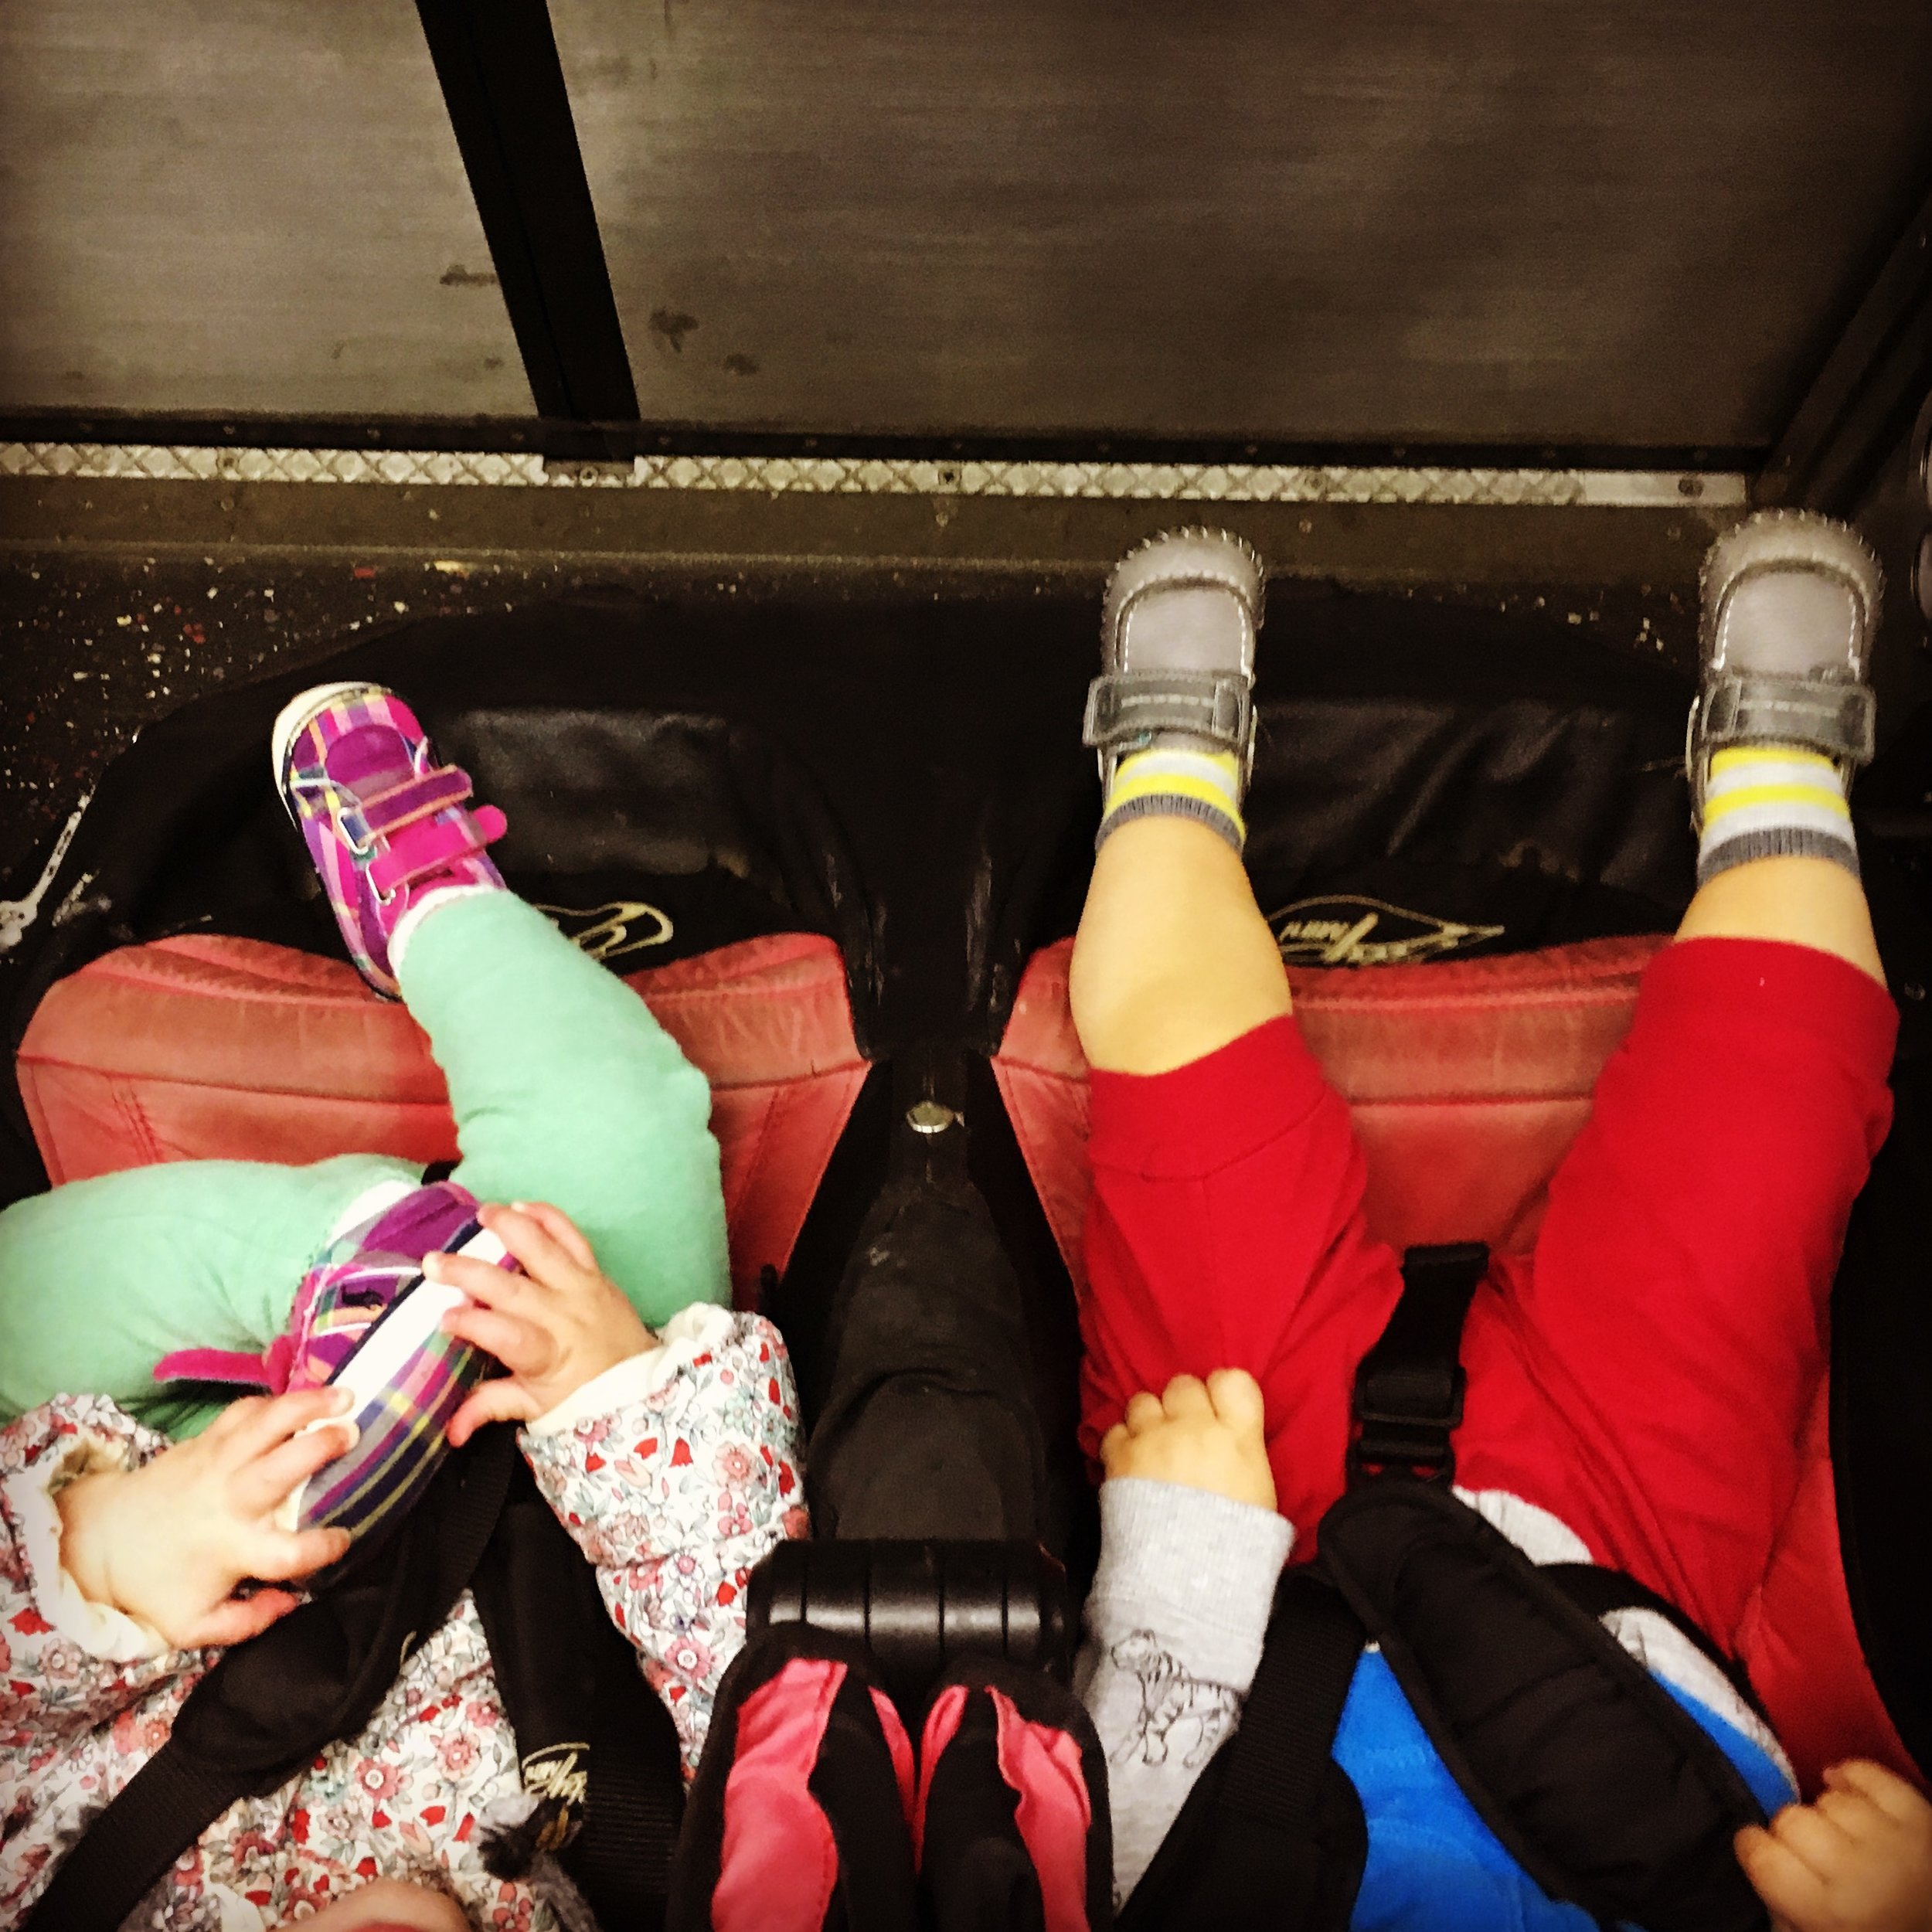 Image: Two toddlers in a double stroller in front of Metro train doors. Image copyright Elisabeth Caron